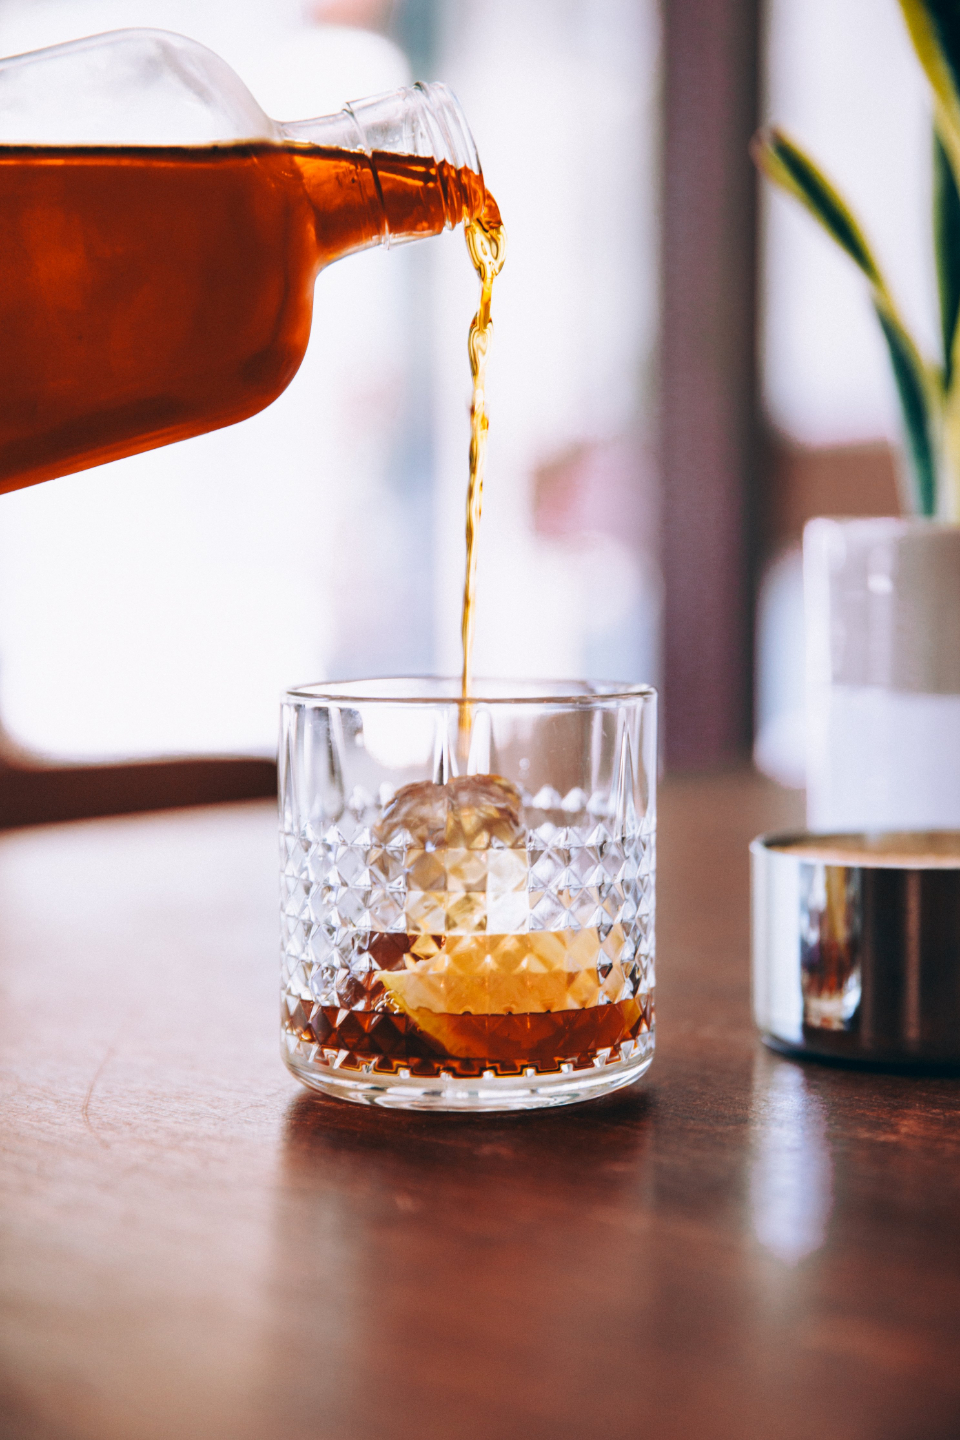 bourbon pouring glass on the rocks ice drink thirsty alcohol close up whiskey bar liquid beverage booze spirits